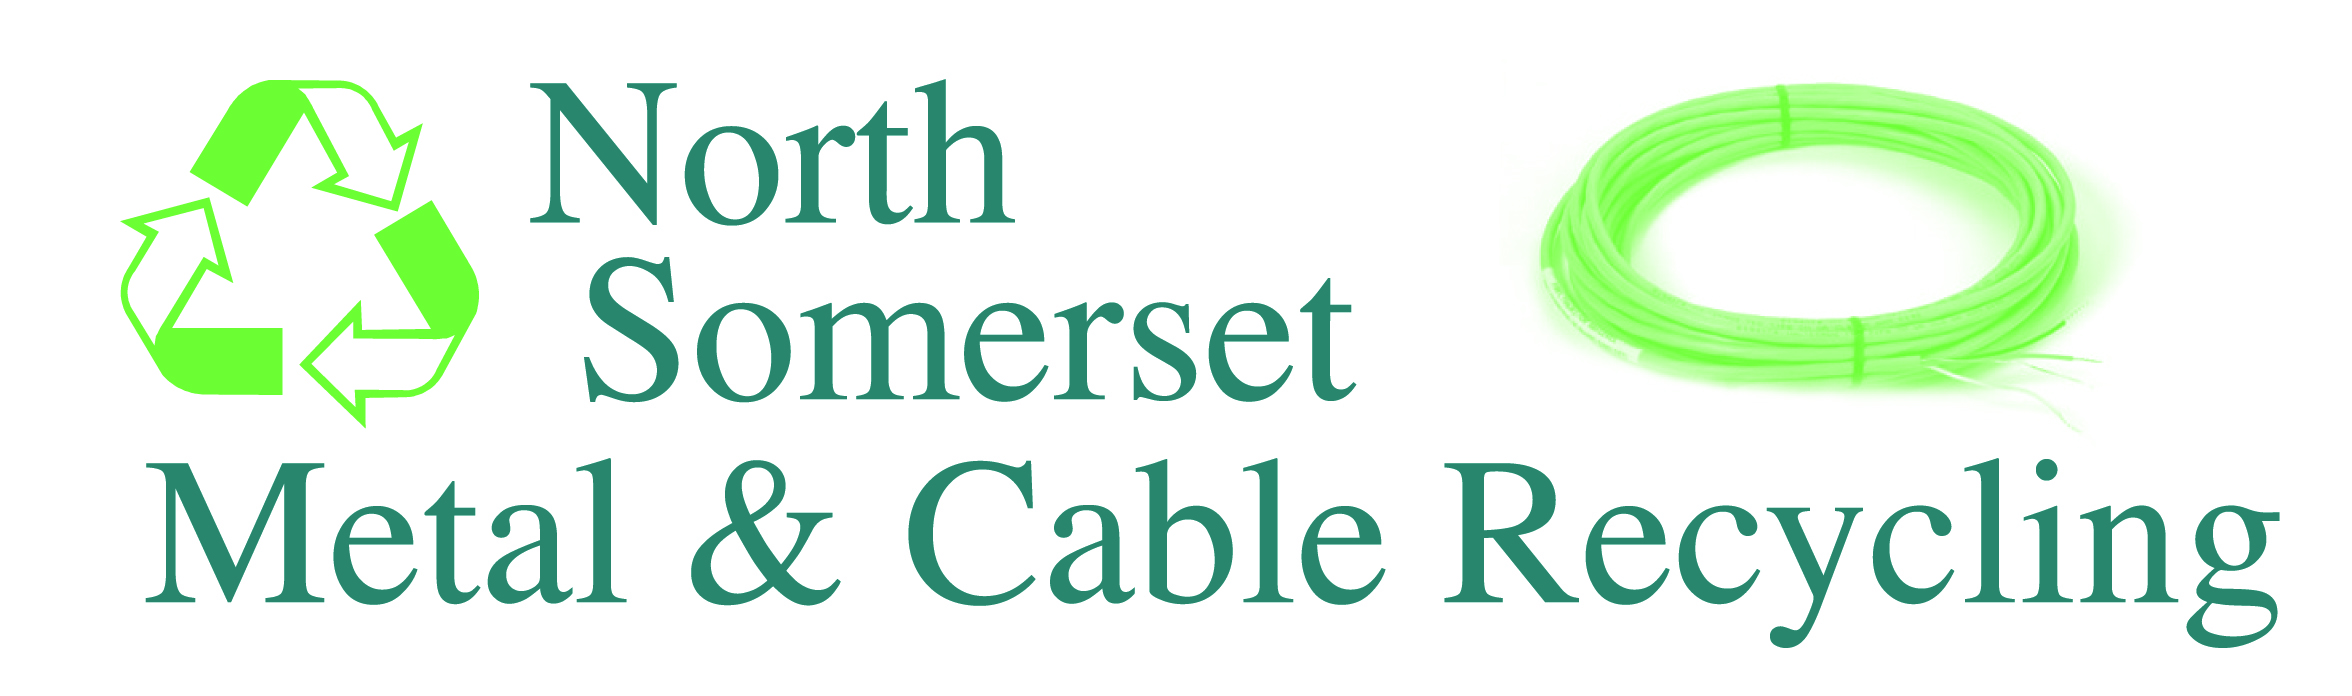 North Somerset Metal & Cable Recycling